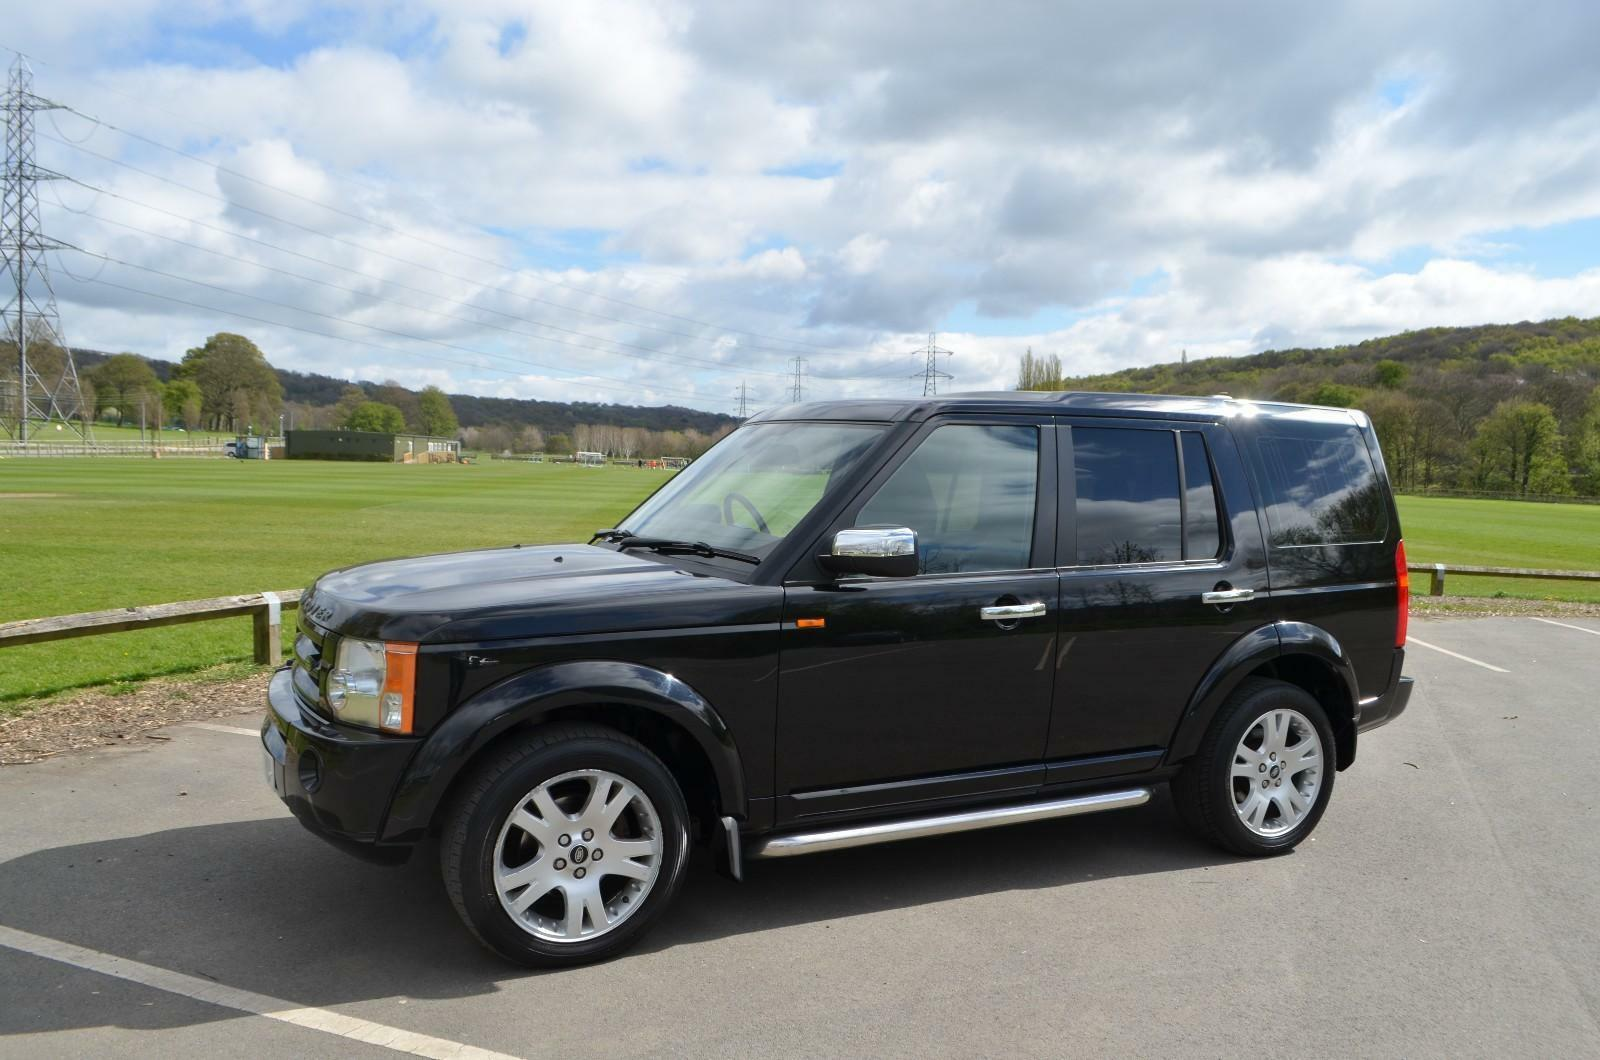 land rover discovery 3 2 7 tdv6 s 2005 55 plate 8 picclick uk. Black Bedroom Furniture Sets. Home Design Ideas